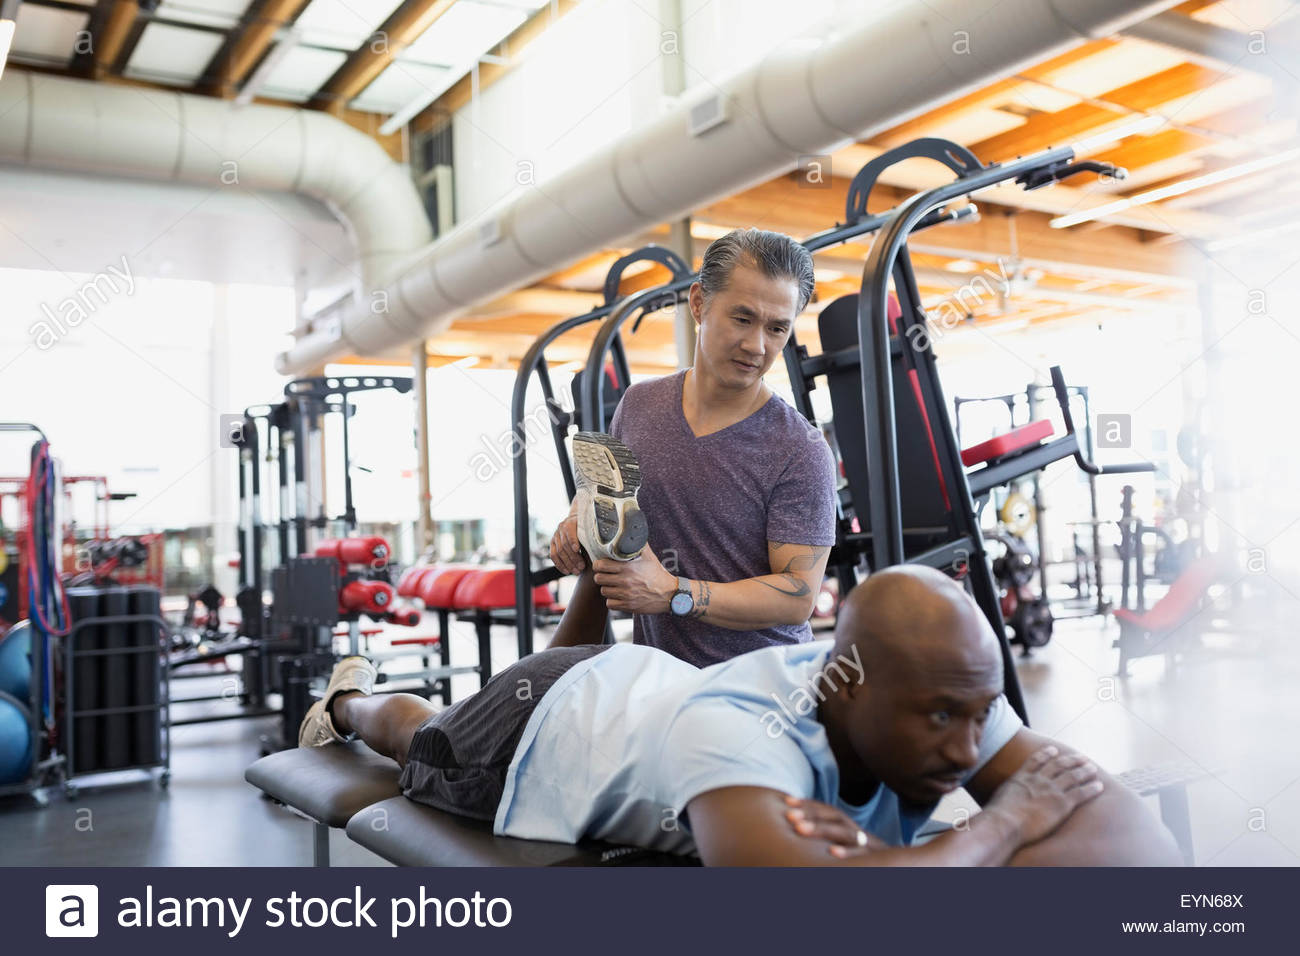 Physical therapist stretching patient leg at gym - Stock Image